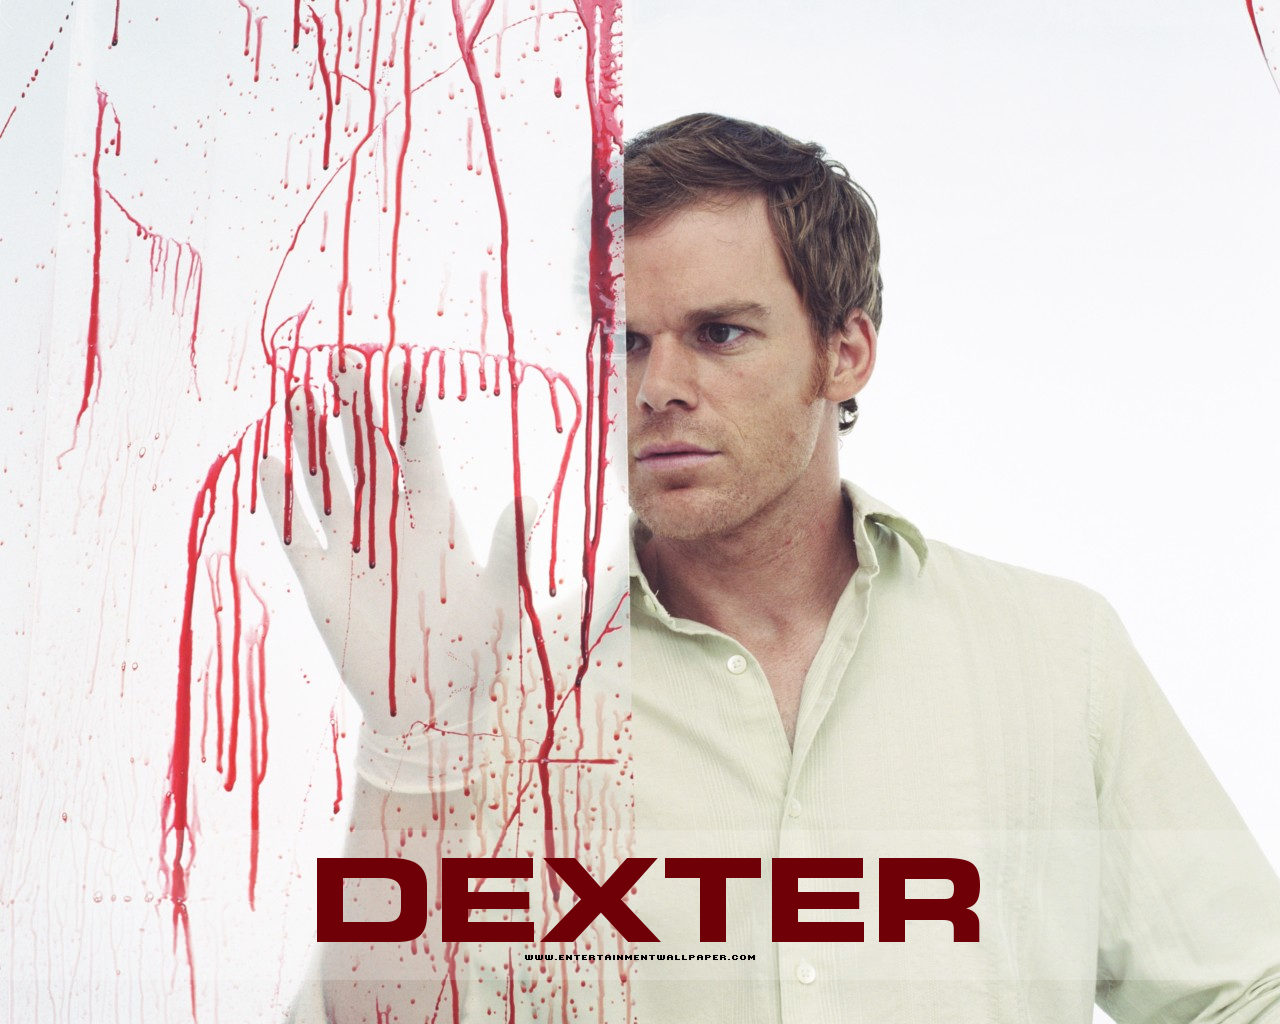 dexters killing habit in the crime based series dexter Dexter t-shirt gallery the dexter tv show is a showtime crime drama series based on the dexter books by jeff  filling the letters are drawings of dexter's.